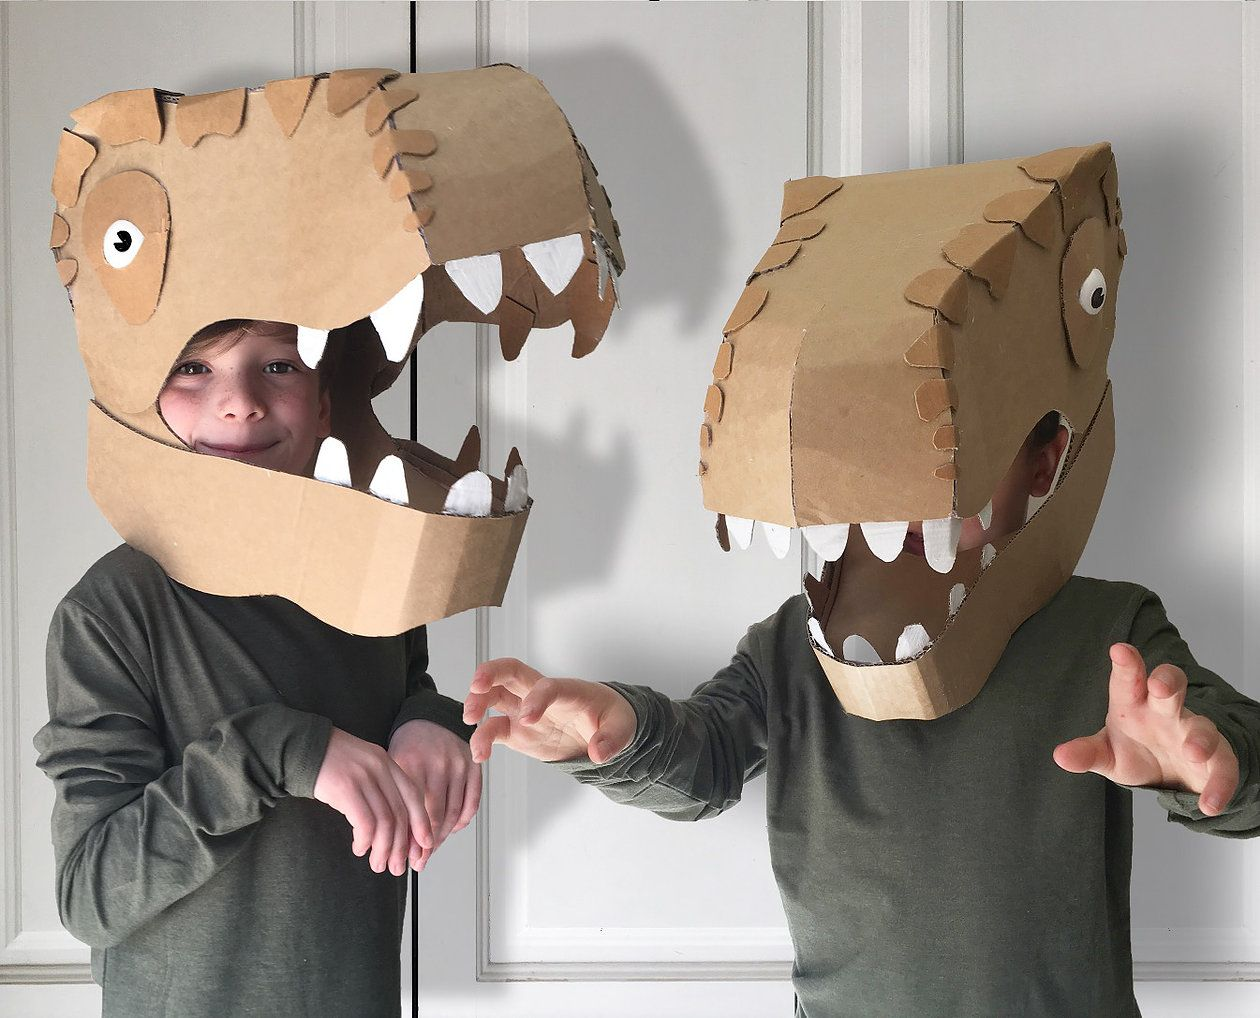 DIY CARDBOARD DINOSAUR HEAD | DIY Cardboard Costume Templates - Zygote Brown Designs #dinosaur